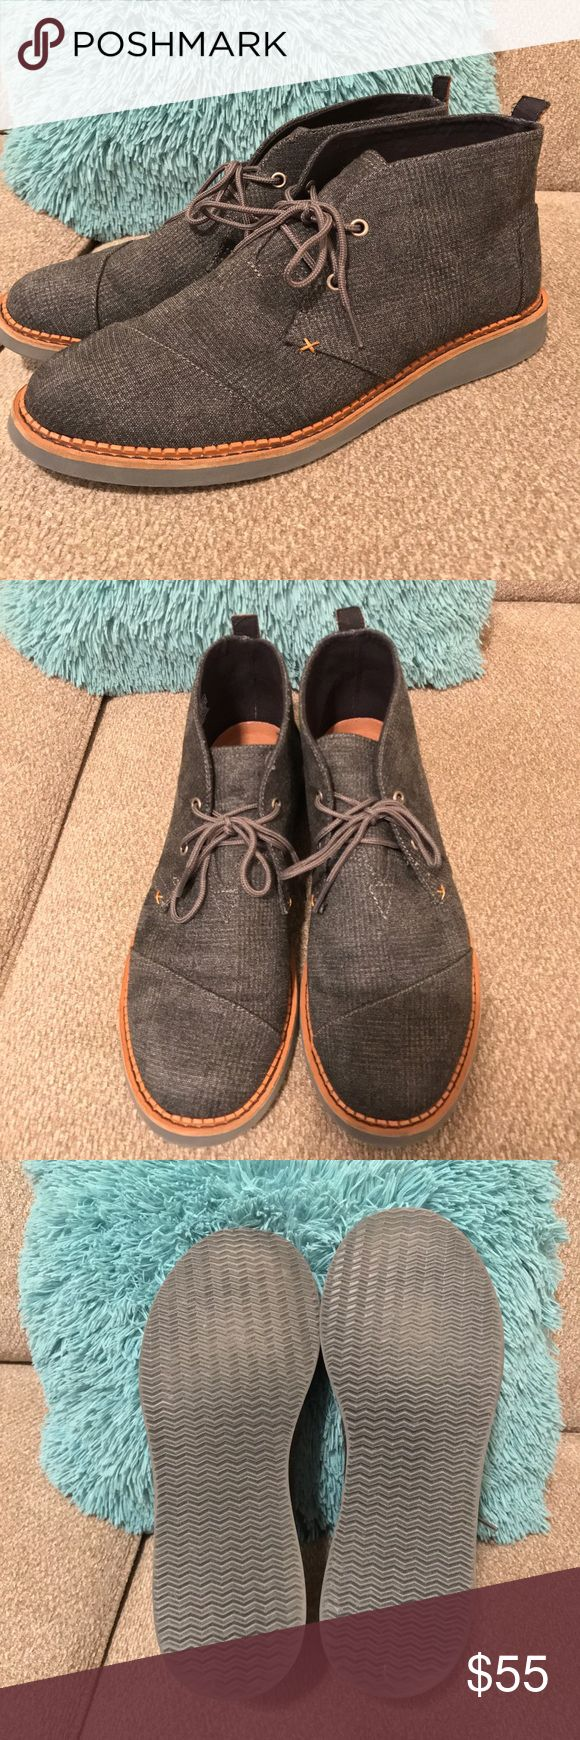 mens Toms boots only worn once Toms size 11 boots. original price is $98.     also available for less in Mer cari. great deal !!!please feel free to ask questions. TOMS Shoes